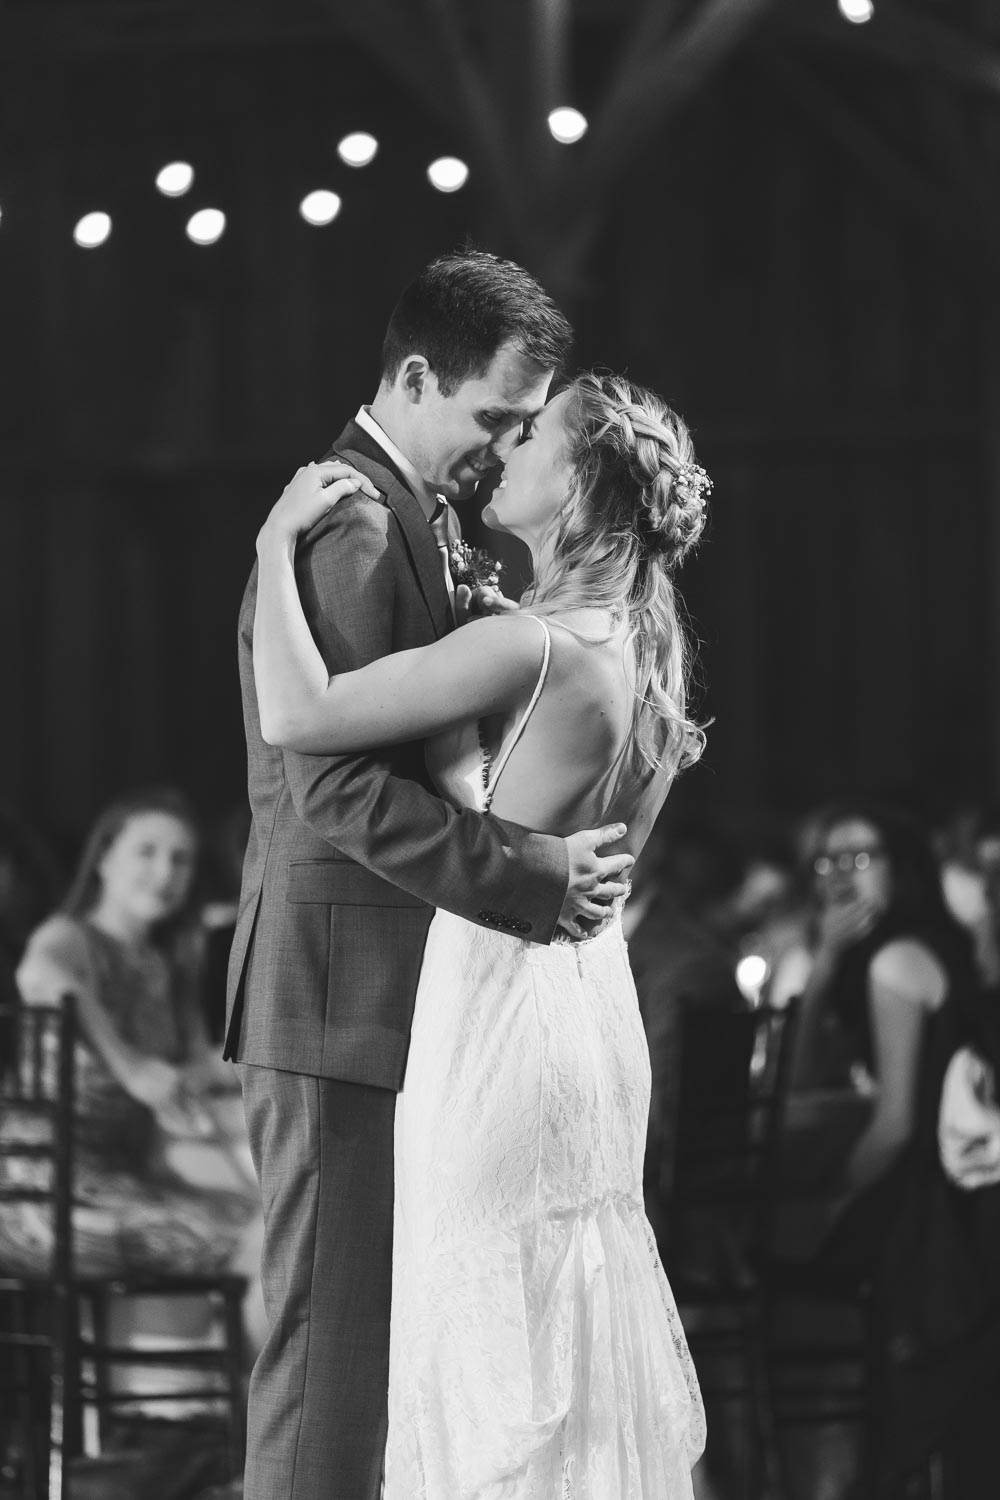 First dance as a married couple at the Barn at Stoneybrooke